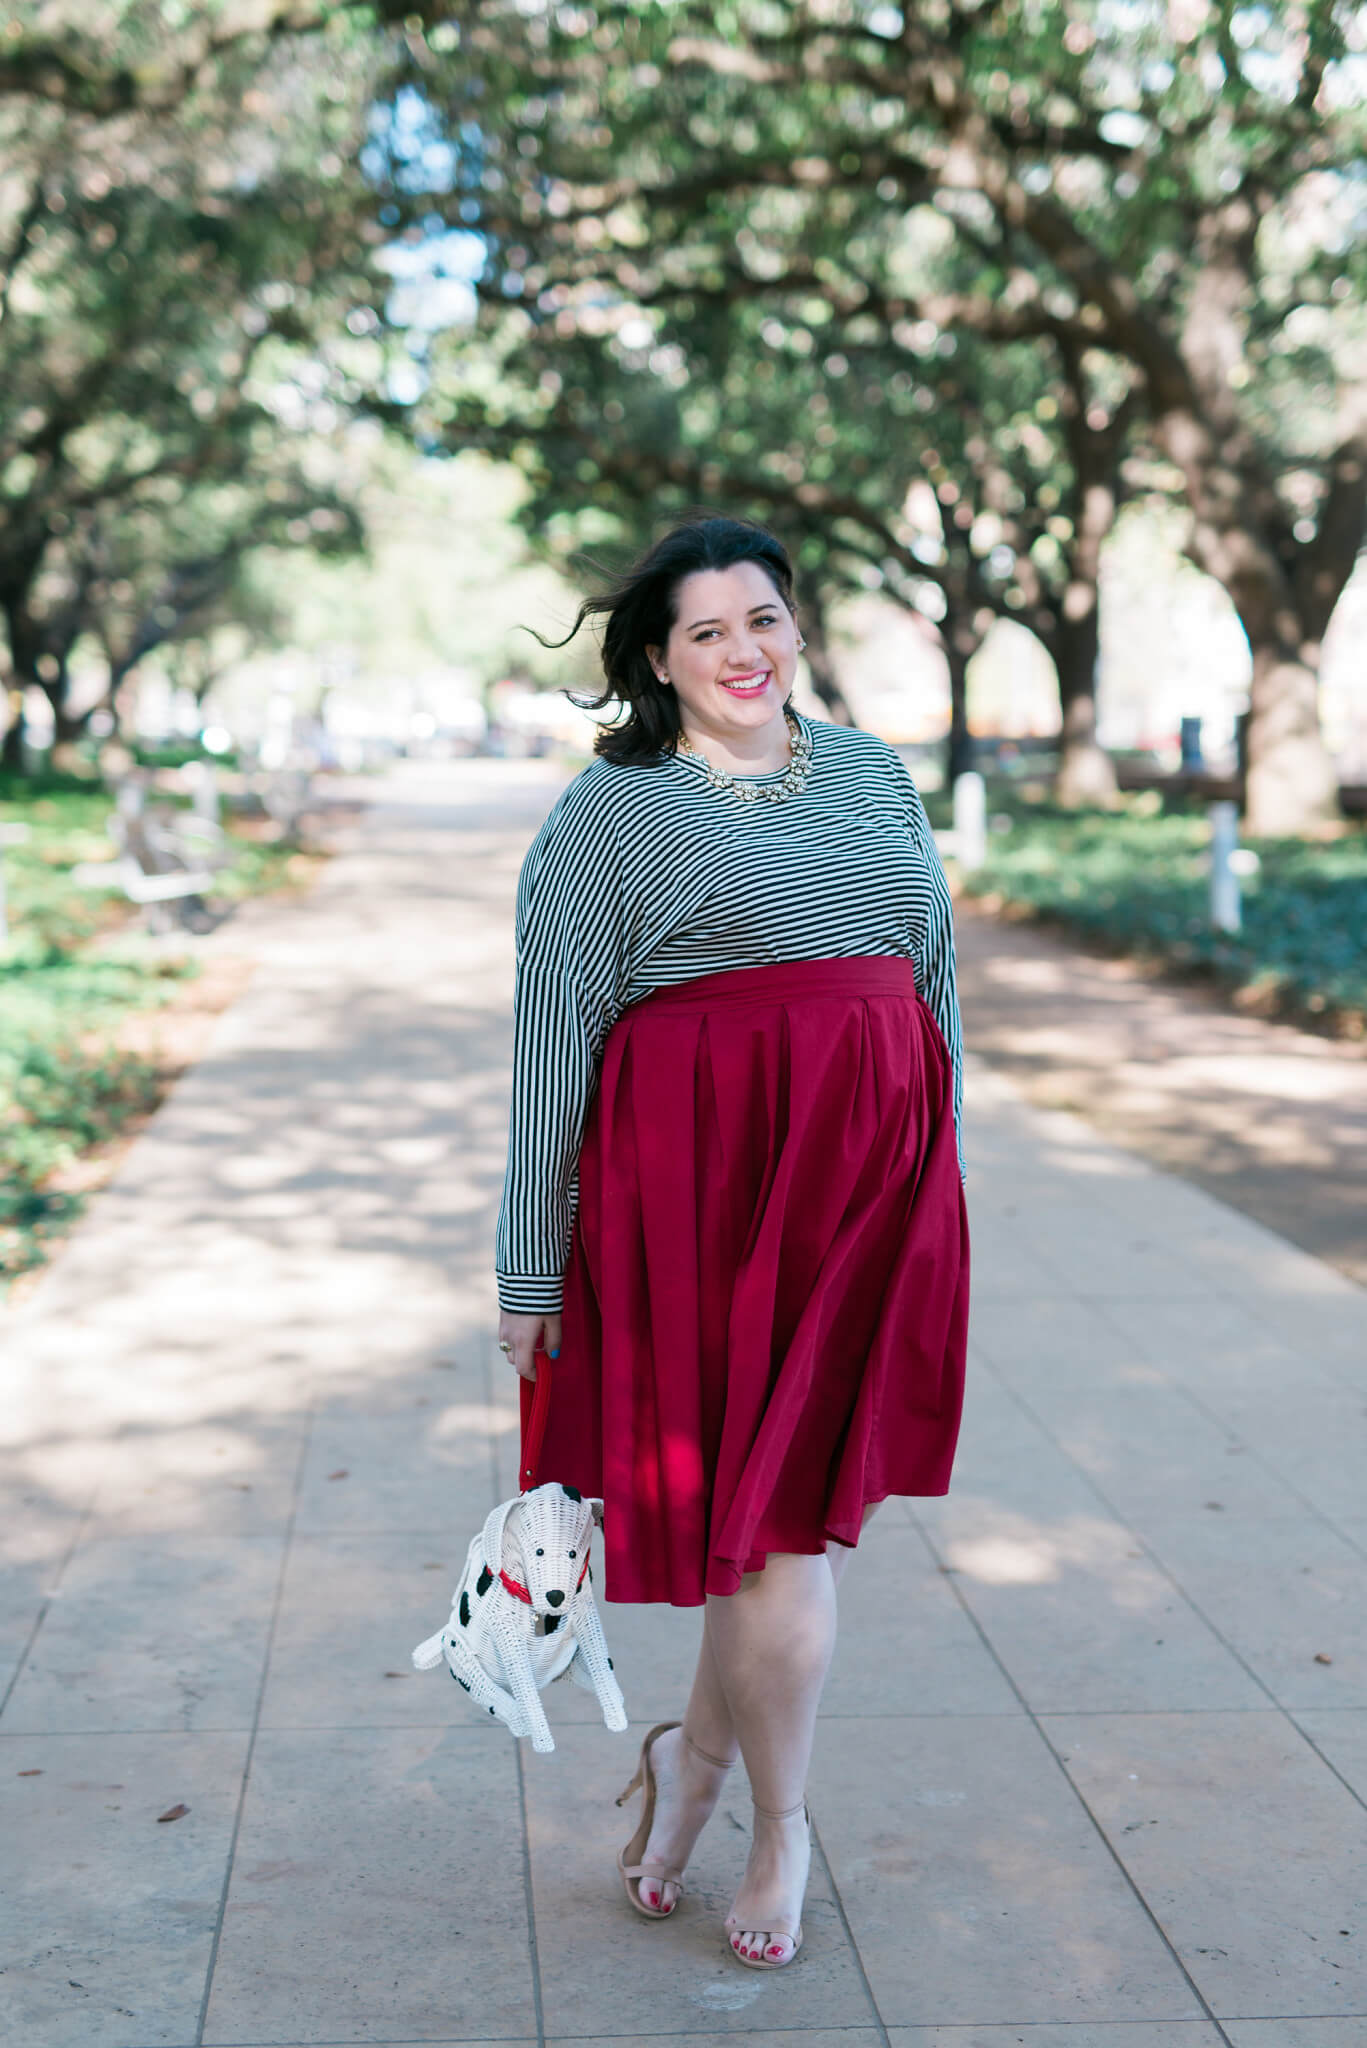 Puppy Love - Something Gold, Something Blue fashion blog - Dressing up a classic outfit with a puppy purse from Kate Spade